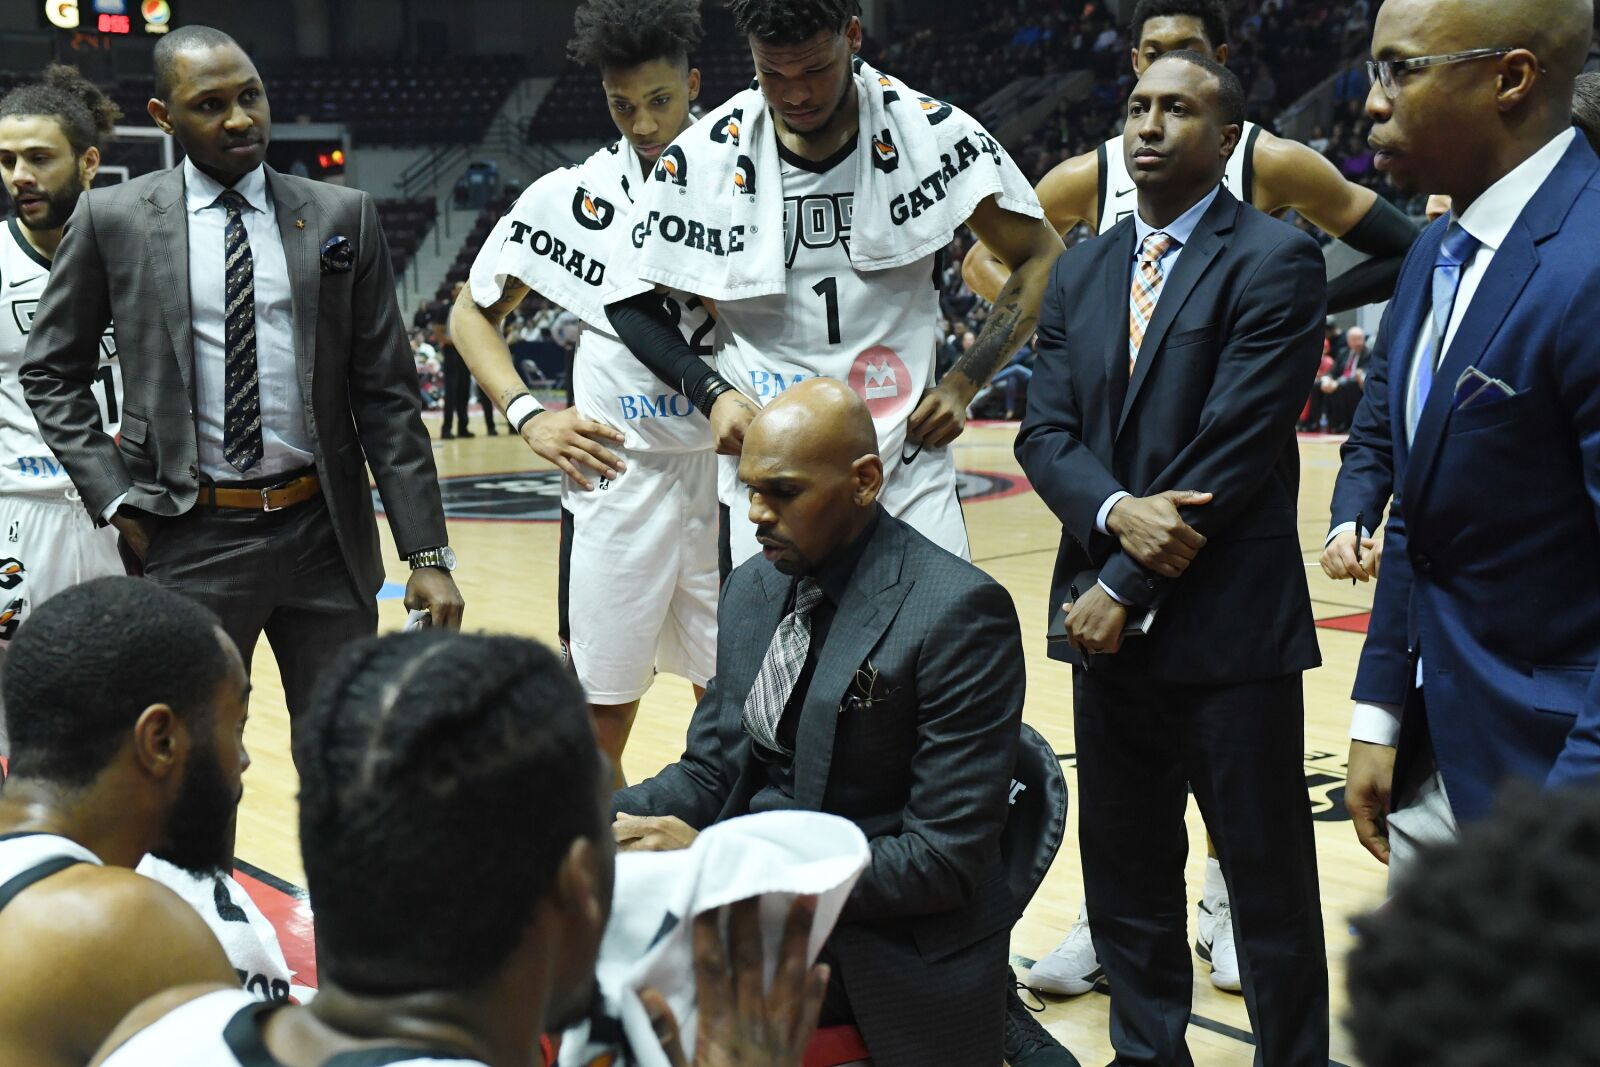 MISSISSAUGA, CANADA - APRIL 10: Coach Jerry Stackhouse of the Raptors 905 huddles with his team during the game against the Austin Spurs during Round Two of the NBA G-League playoffs on April 10, 2018 at the Hershey Centre in Mississauga, Ontario, Canada. NOTE TO USER: User expressly acknowledges and agrees that, by downloading and or using this Photograph, user is consenting to the terms and conditions of the Getty Images License Agreement. Mandatory Copyright Notice: Copyright 2018 NBAE (Photo by Ron Turenne/NBAE via Getty Images)